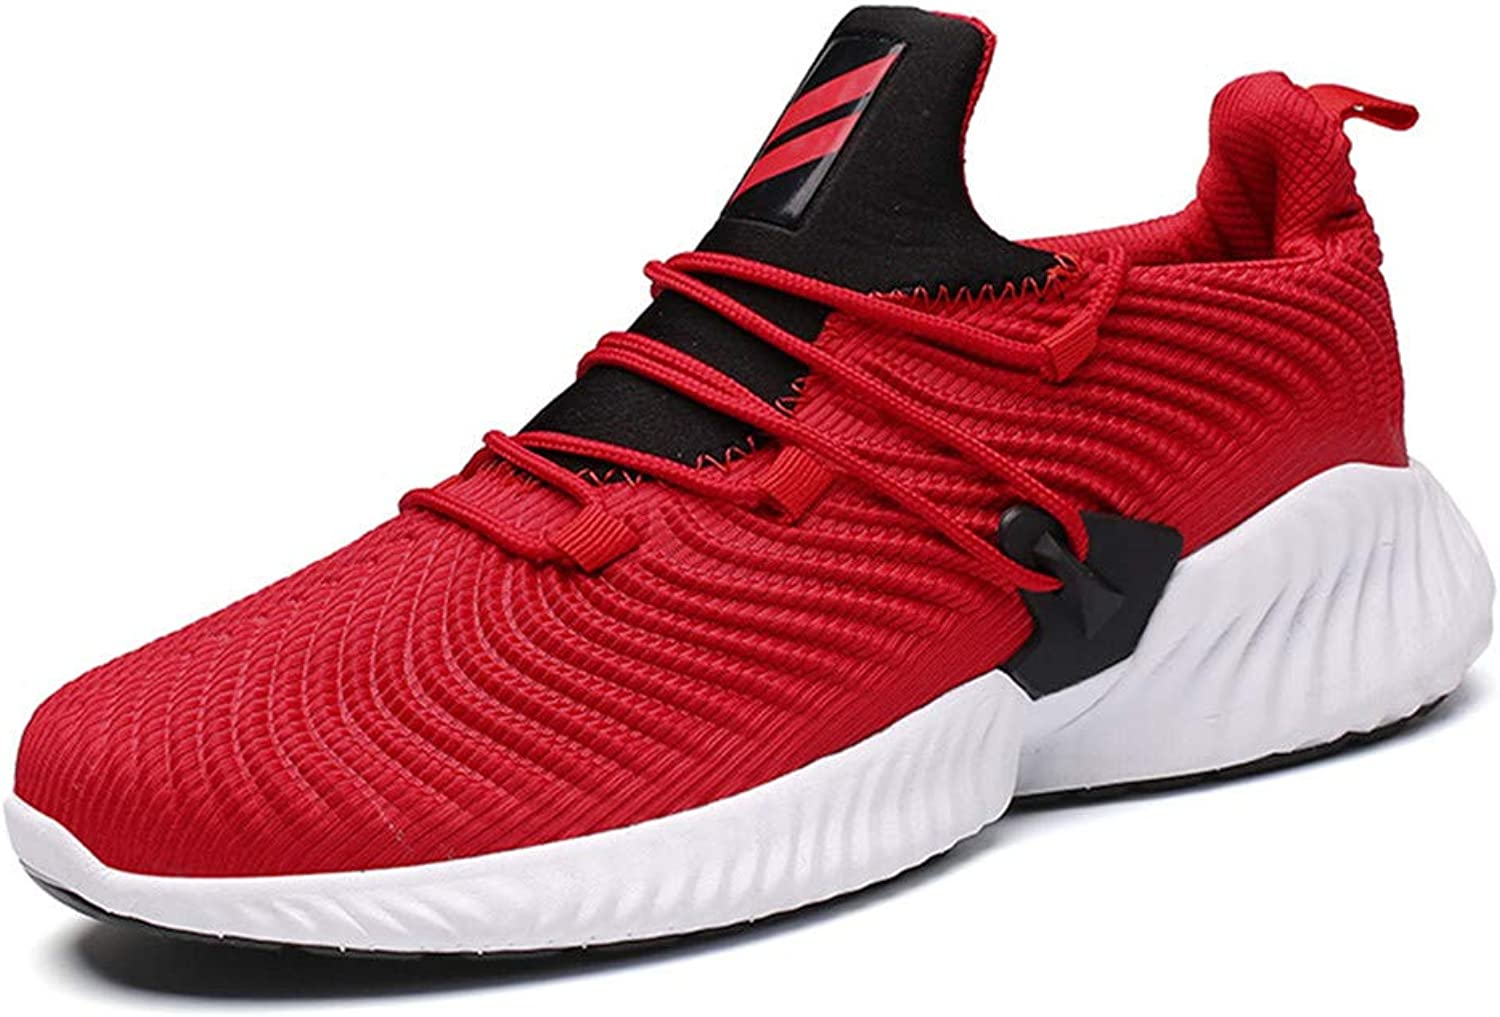 Lxmhz Sneakers Running for Mens, Sports shoes Air Trainers Fitness Casual Walk Gym Jogging Athletic Sneakers Gym Casual Tennis Walking shoes